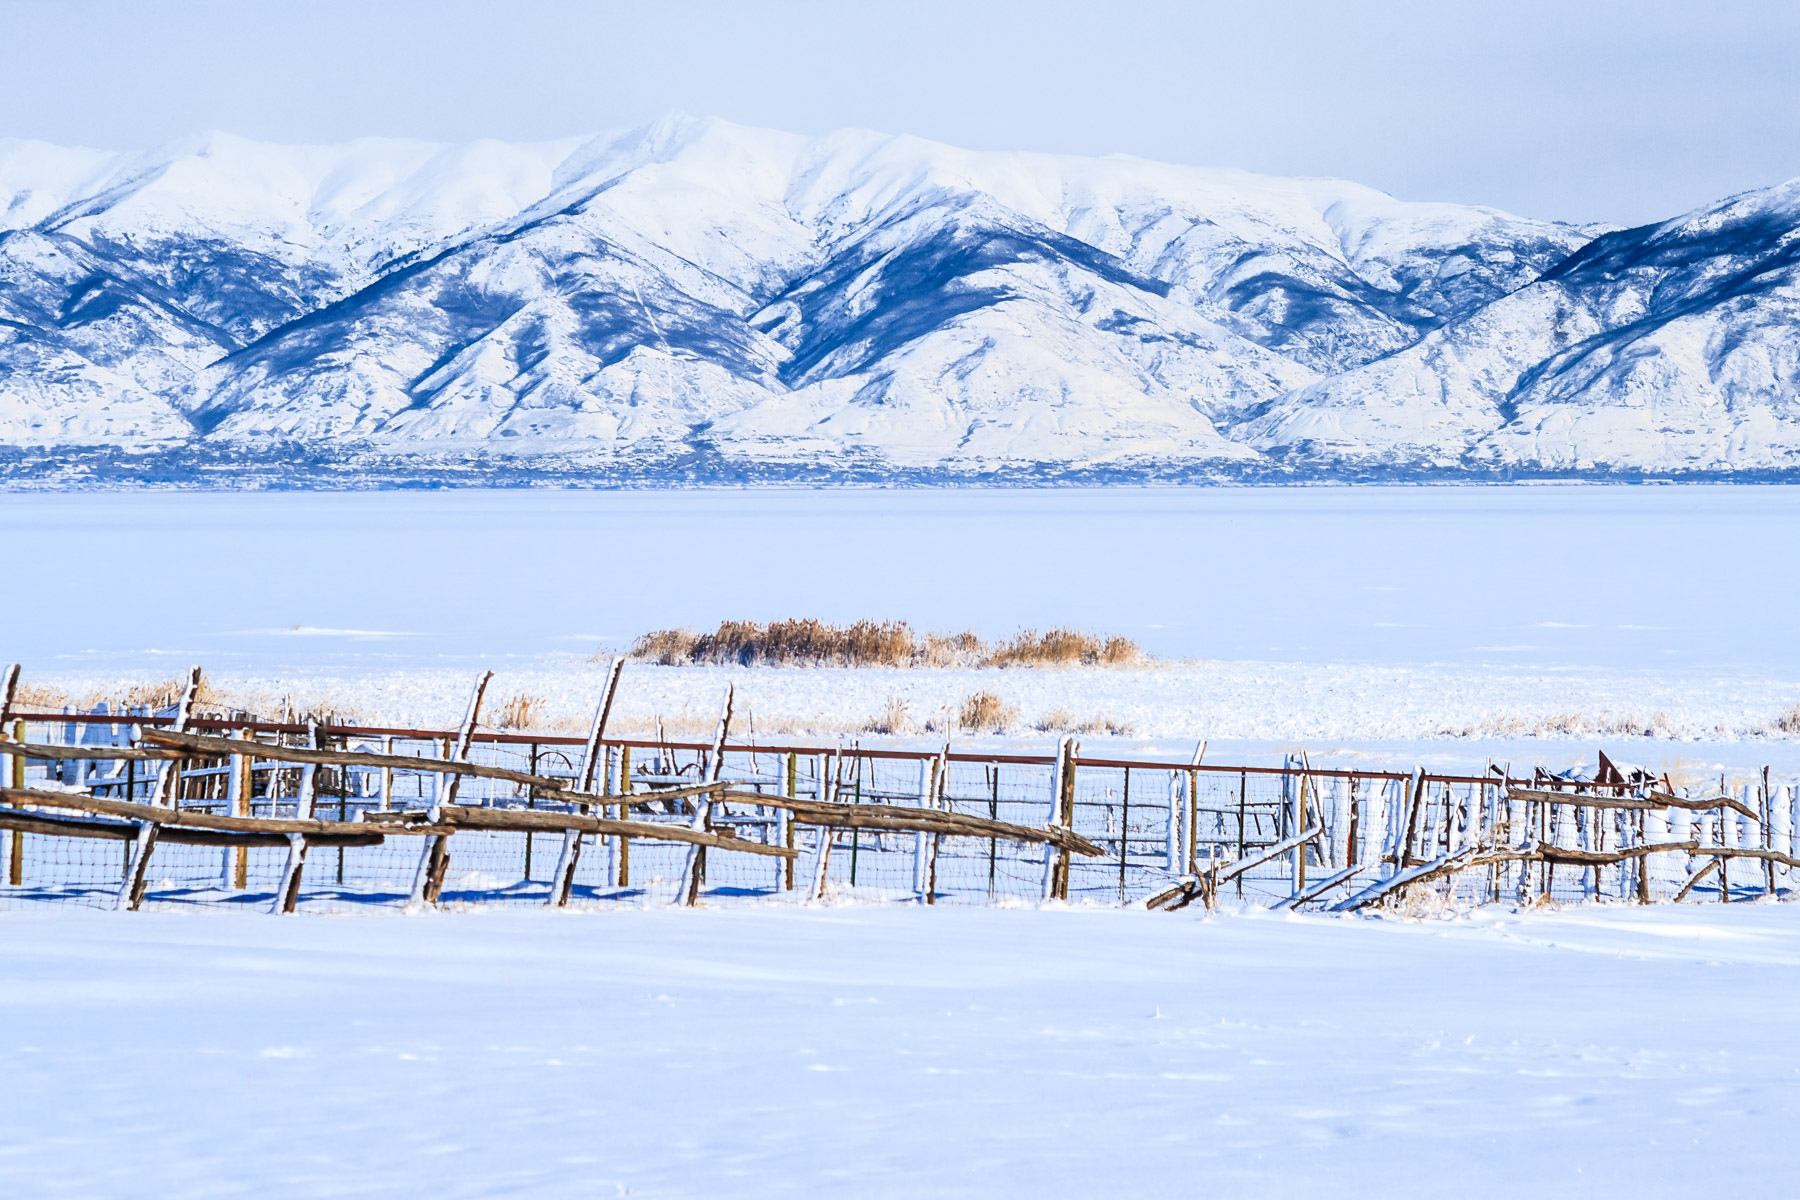 A fence at the Fielding Garr Ranch on Antelope Island, Utah, backed by the mighty Wasatch Front.